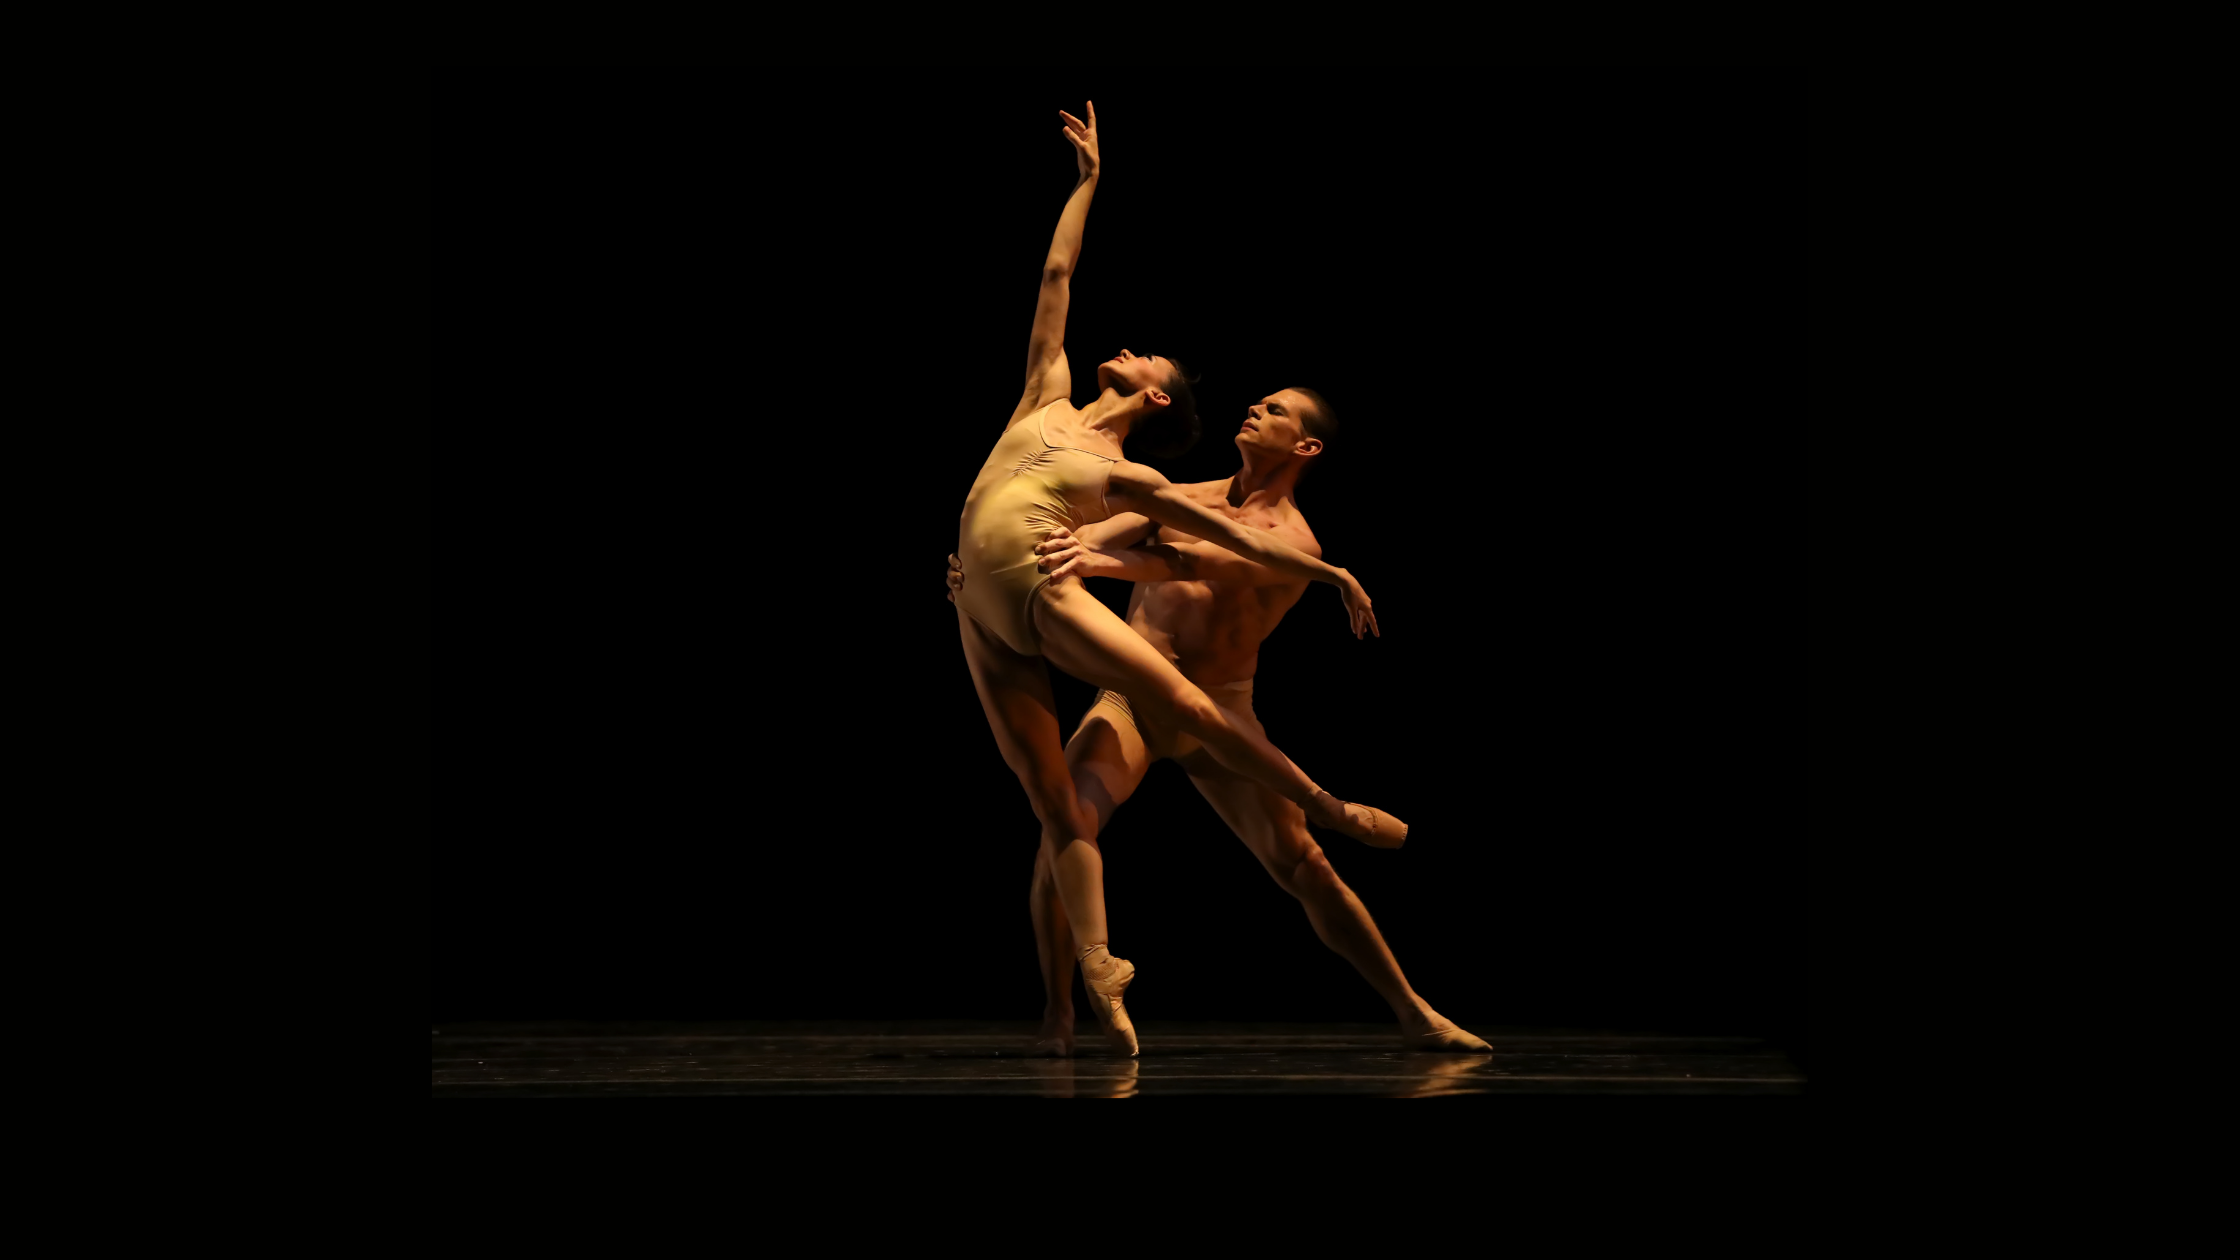 One male and one female dancer in a spotlight on a dark stage.